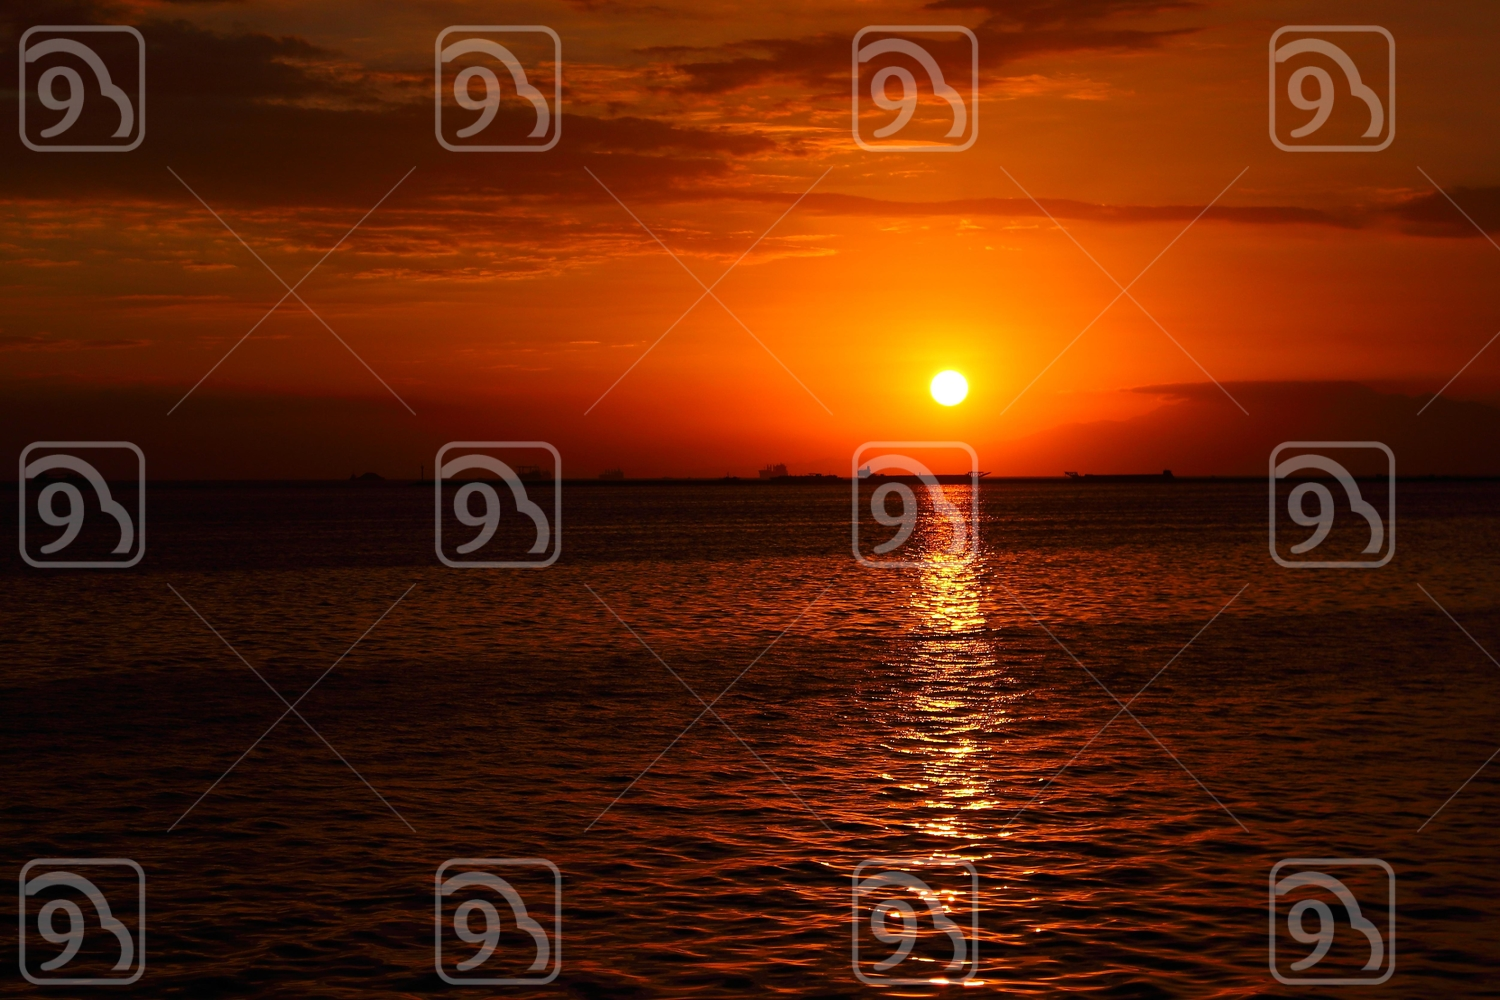 Sunset at the Bay with the sun's reflection on the water